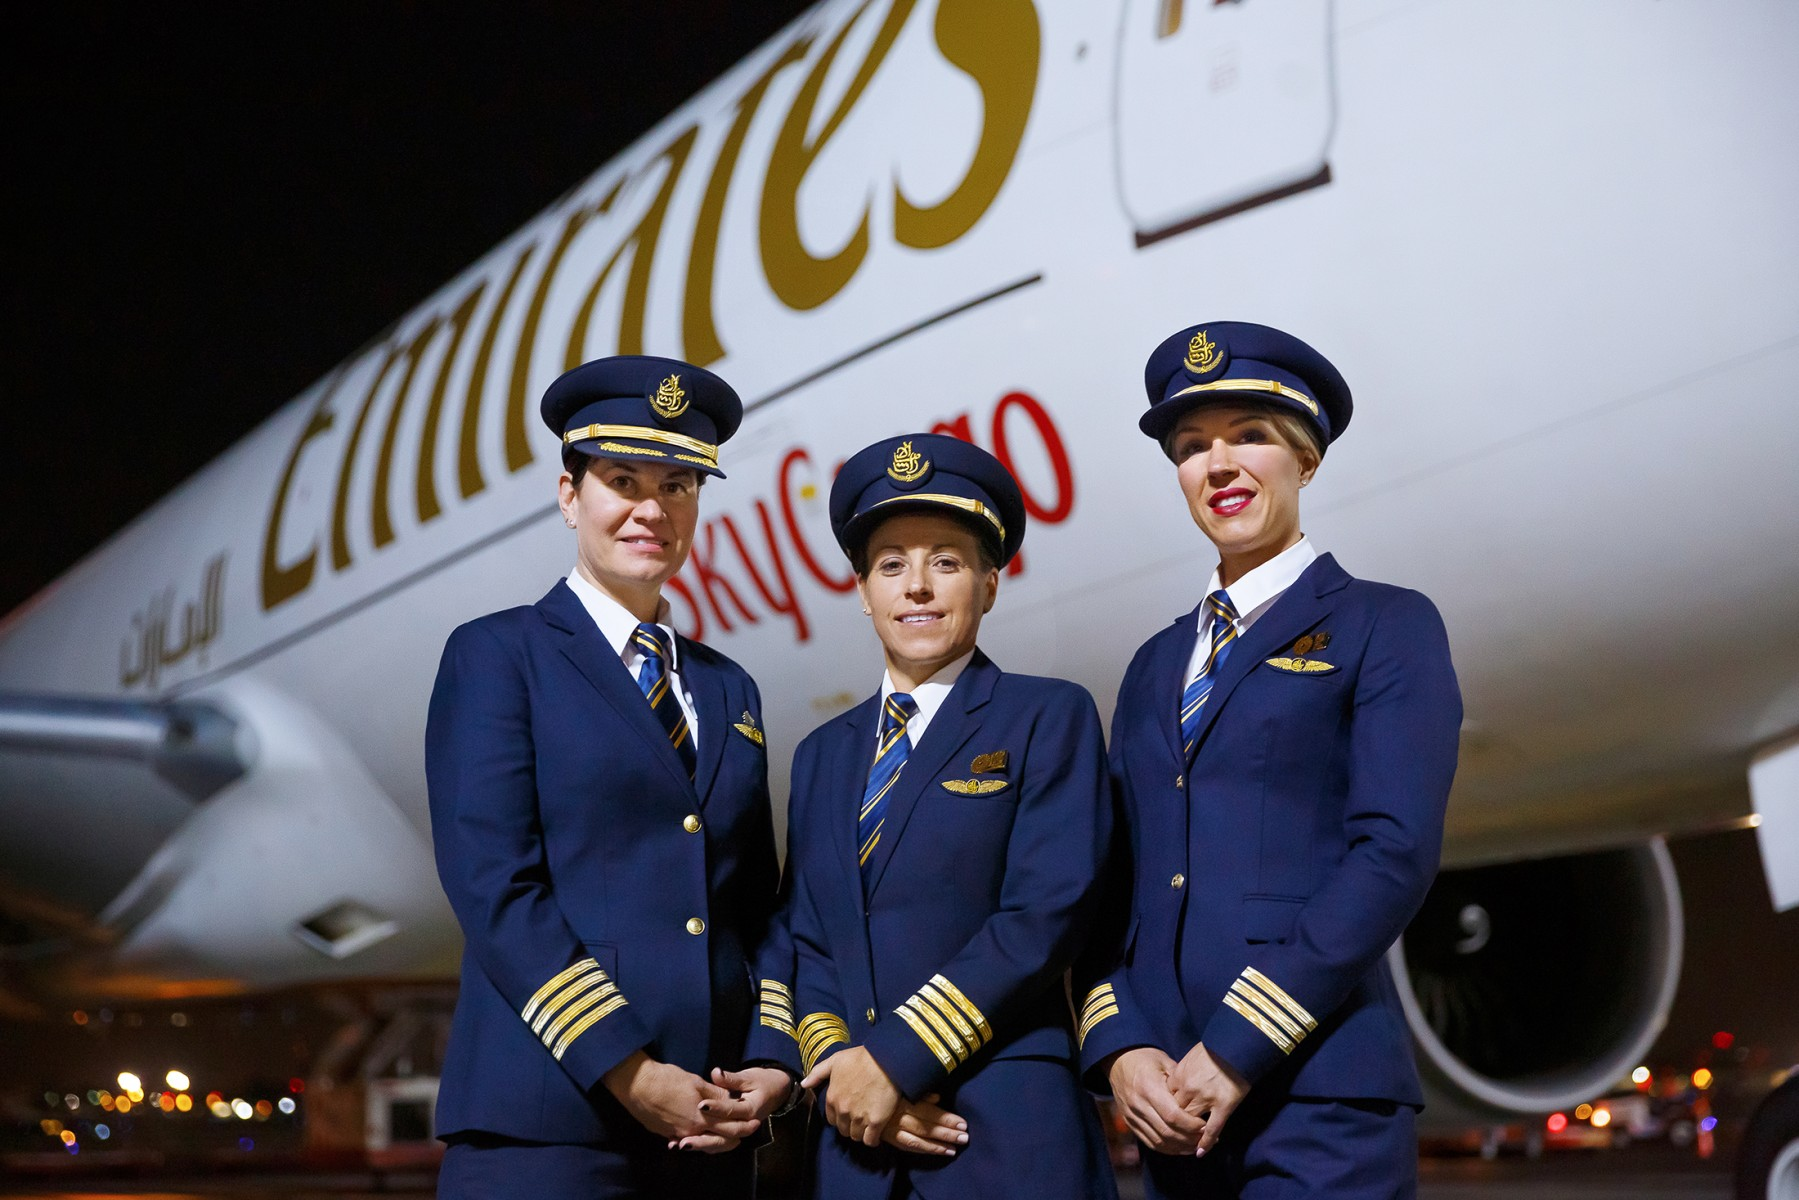 (L to R) Captain Heather Wolf from Canada, Captain Ellen Roz from the United States and First Officer Heidi McDiarmid from Australia pilot the all women Emirates freighter aircraft